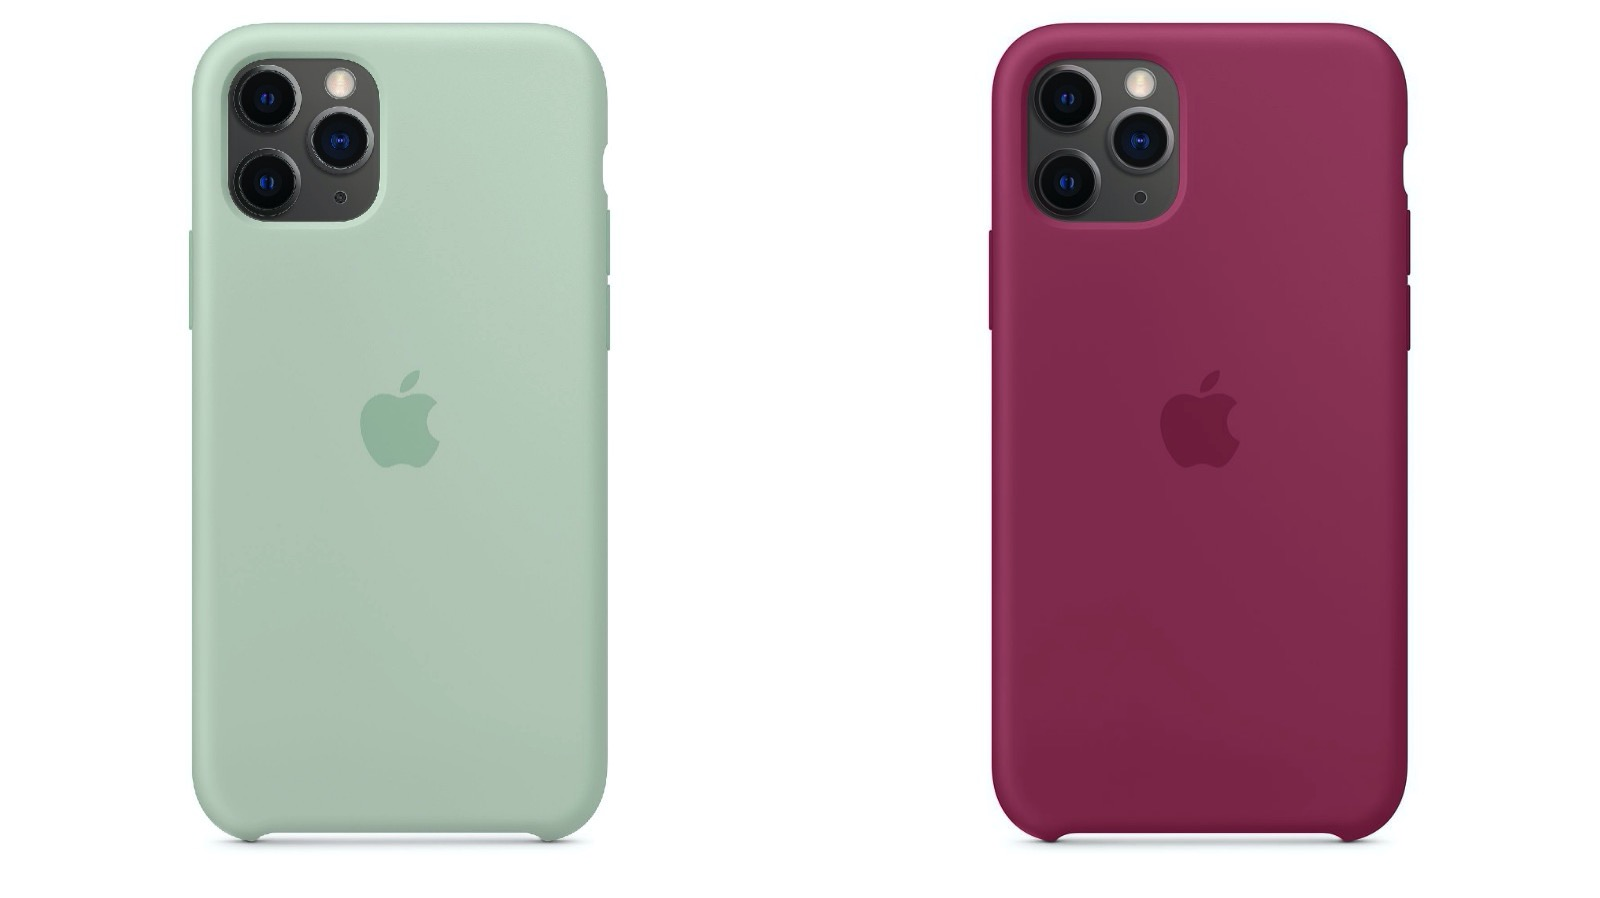 New Silicone Cases for iPhone11Pro Series